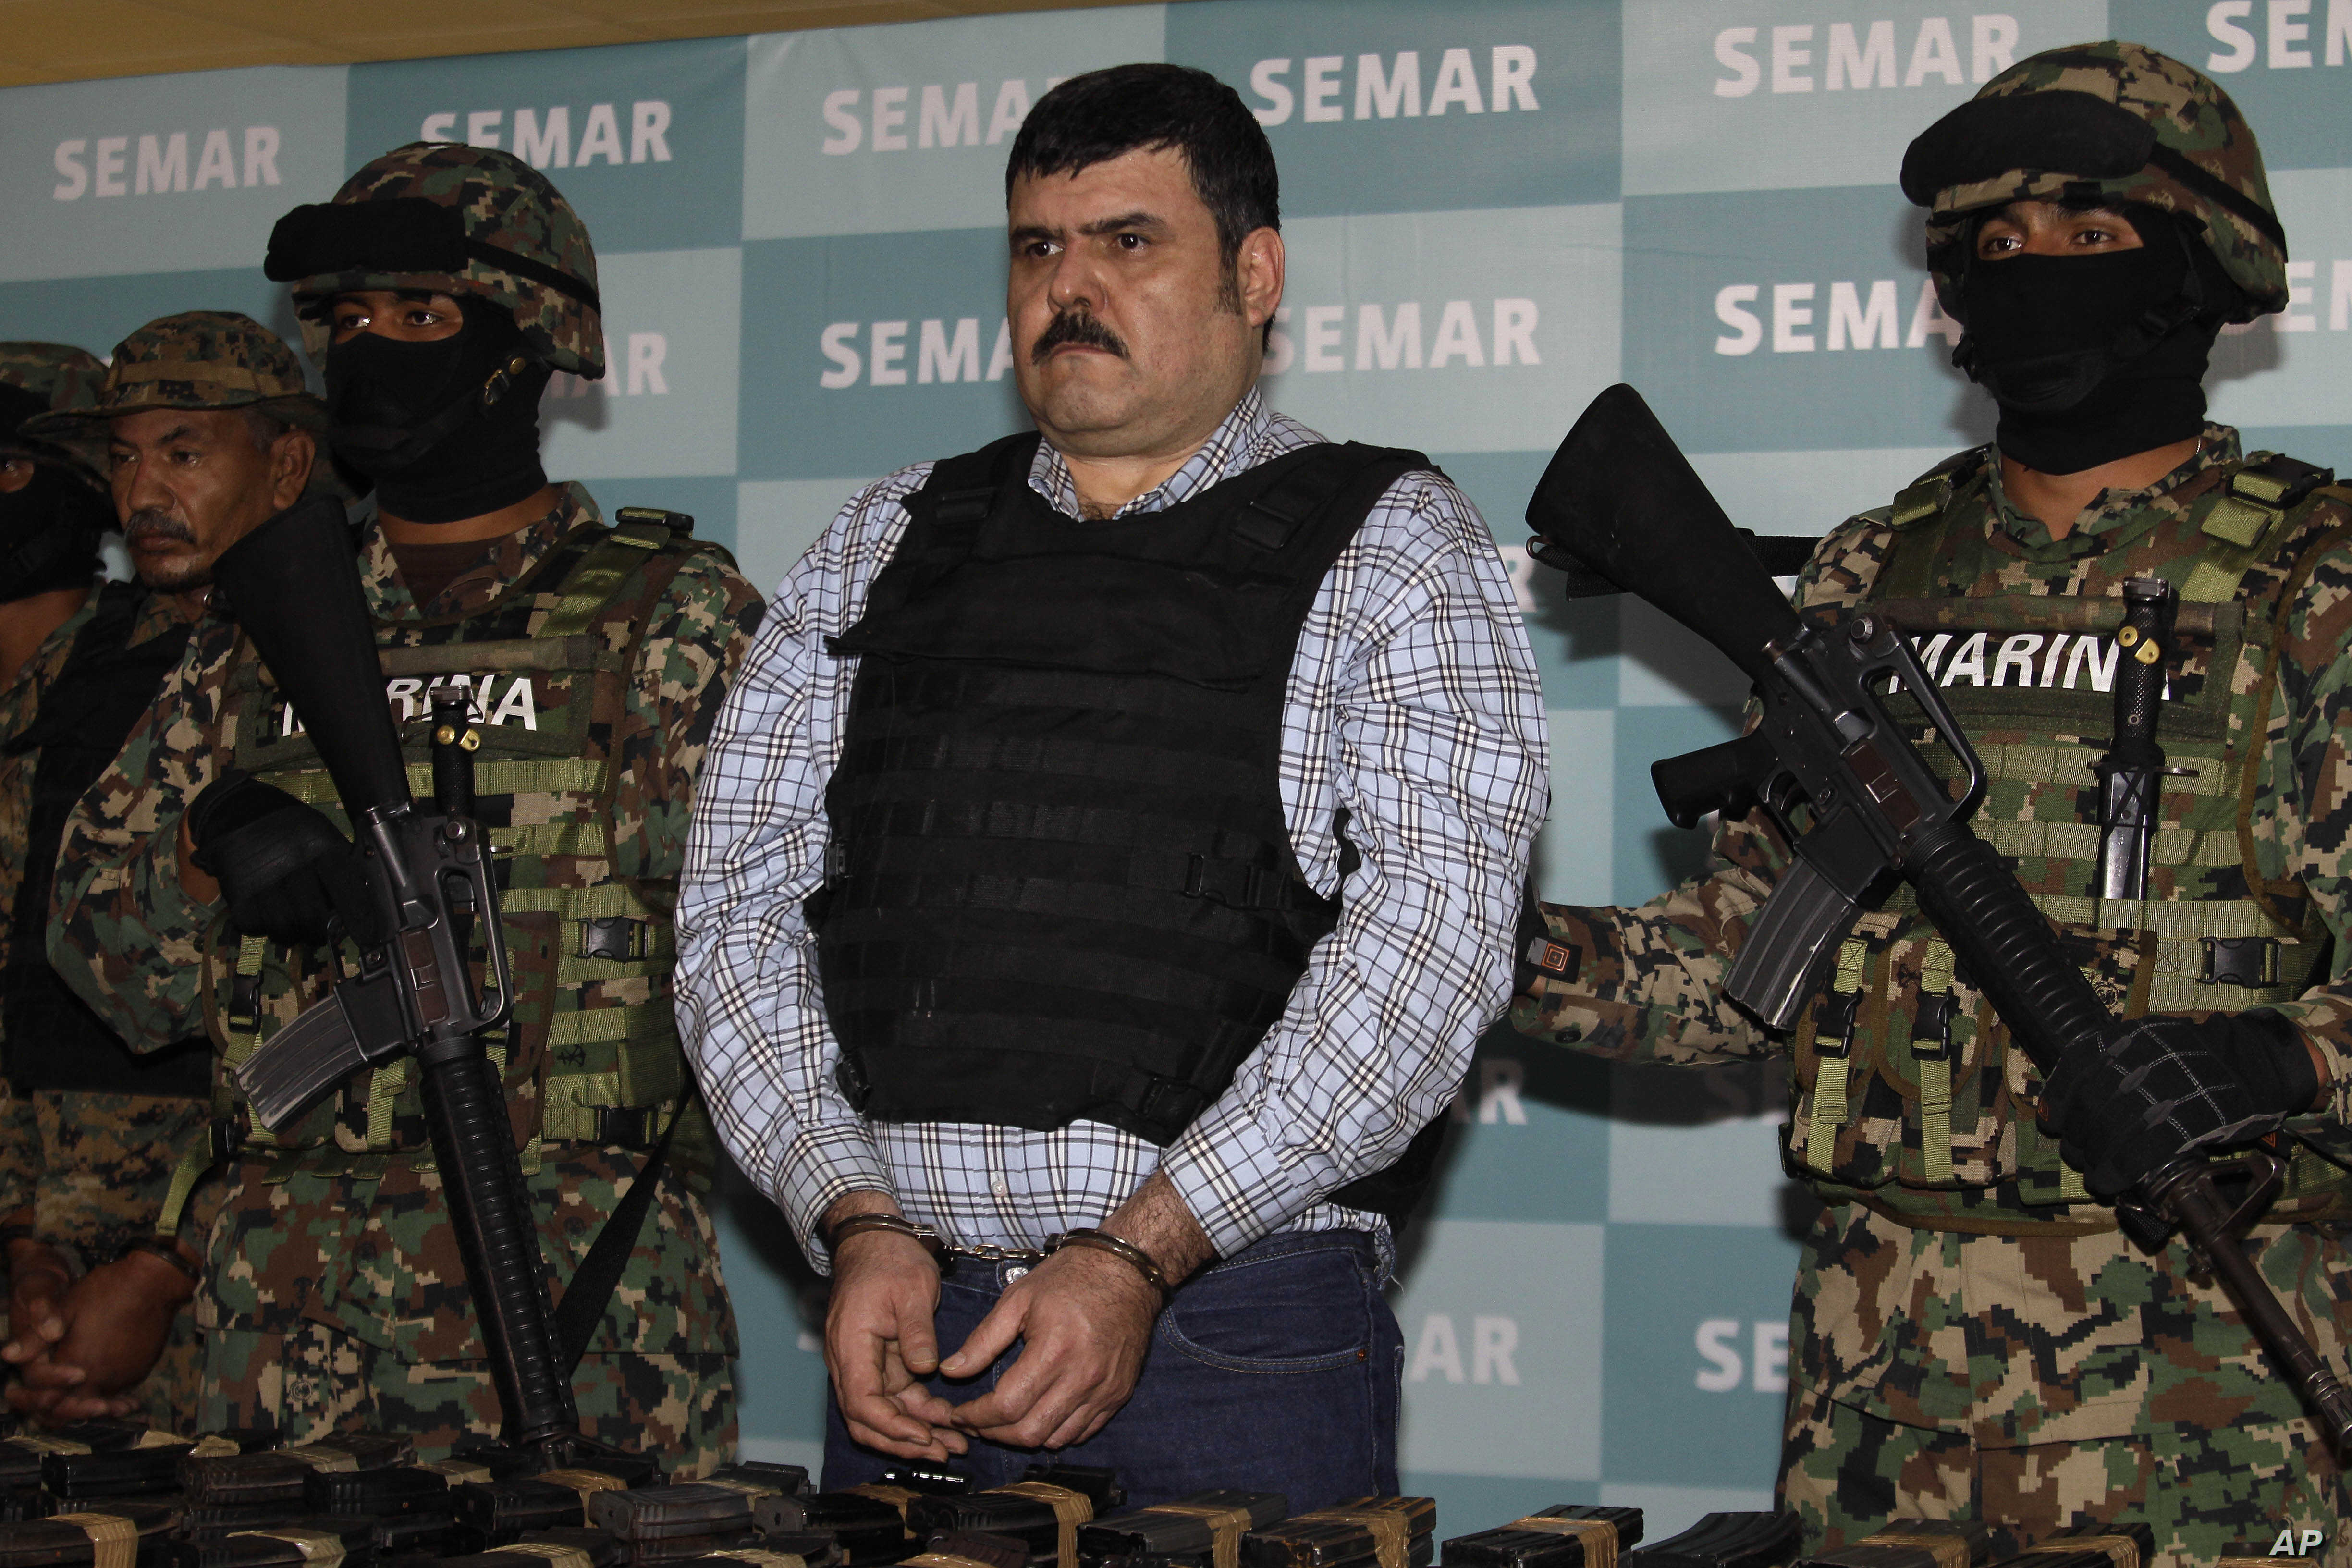 Alleged Mexican Drug Lord Captured by Military | Voice of